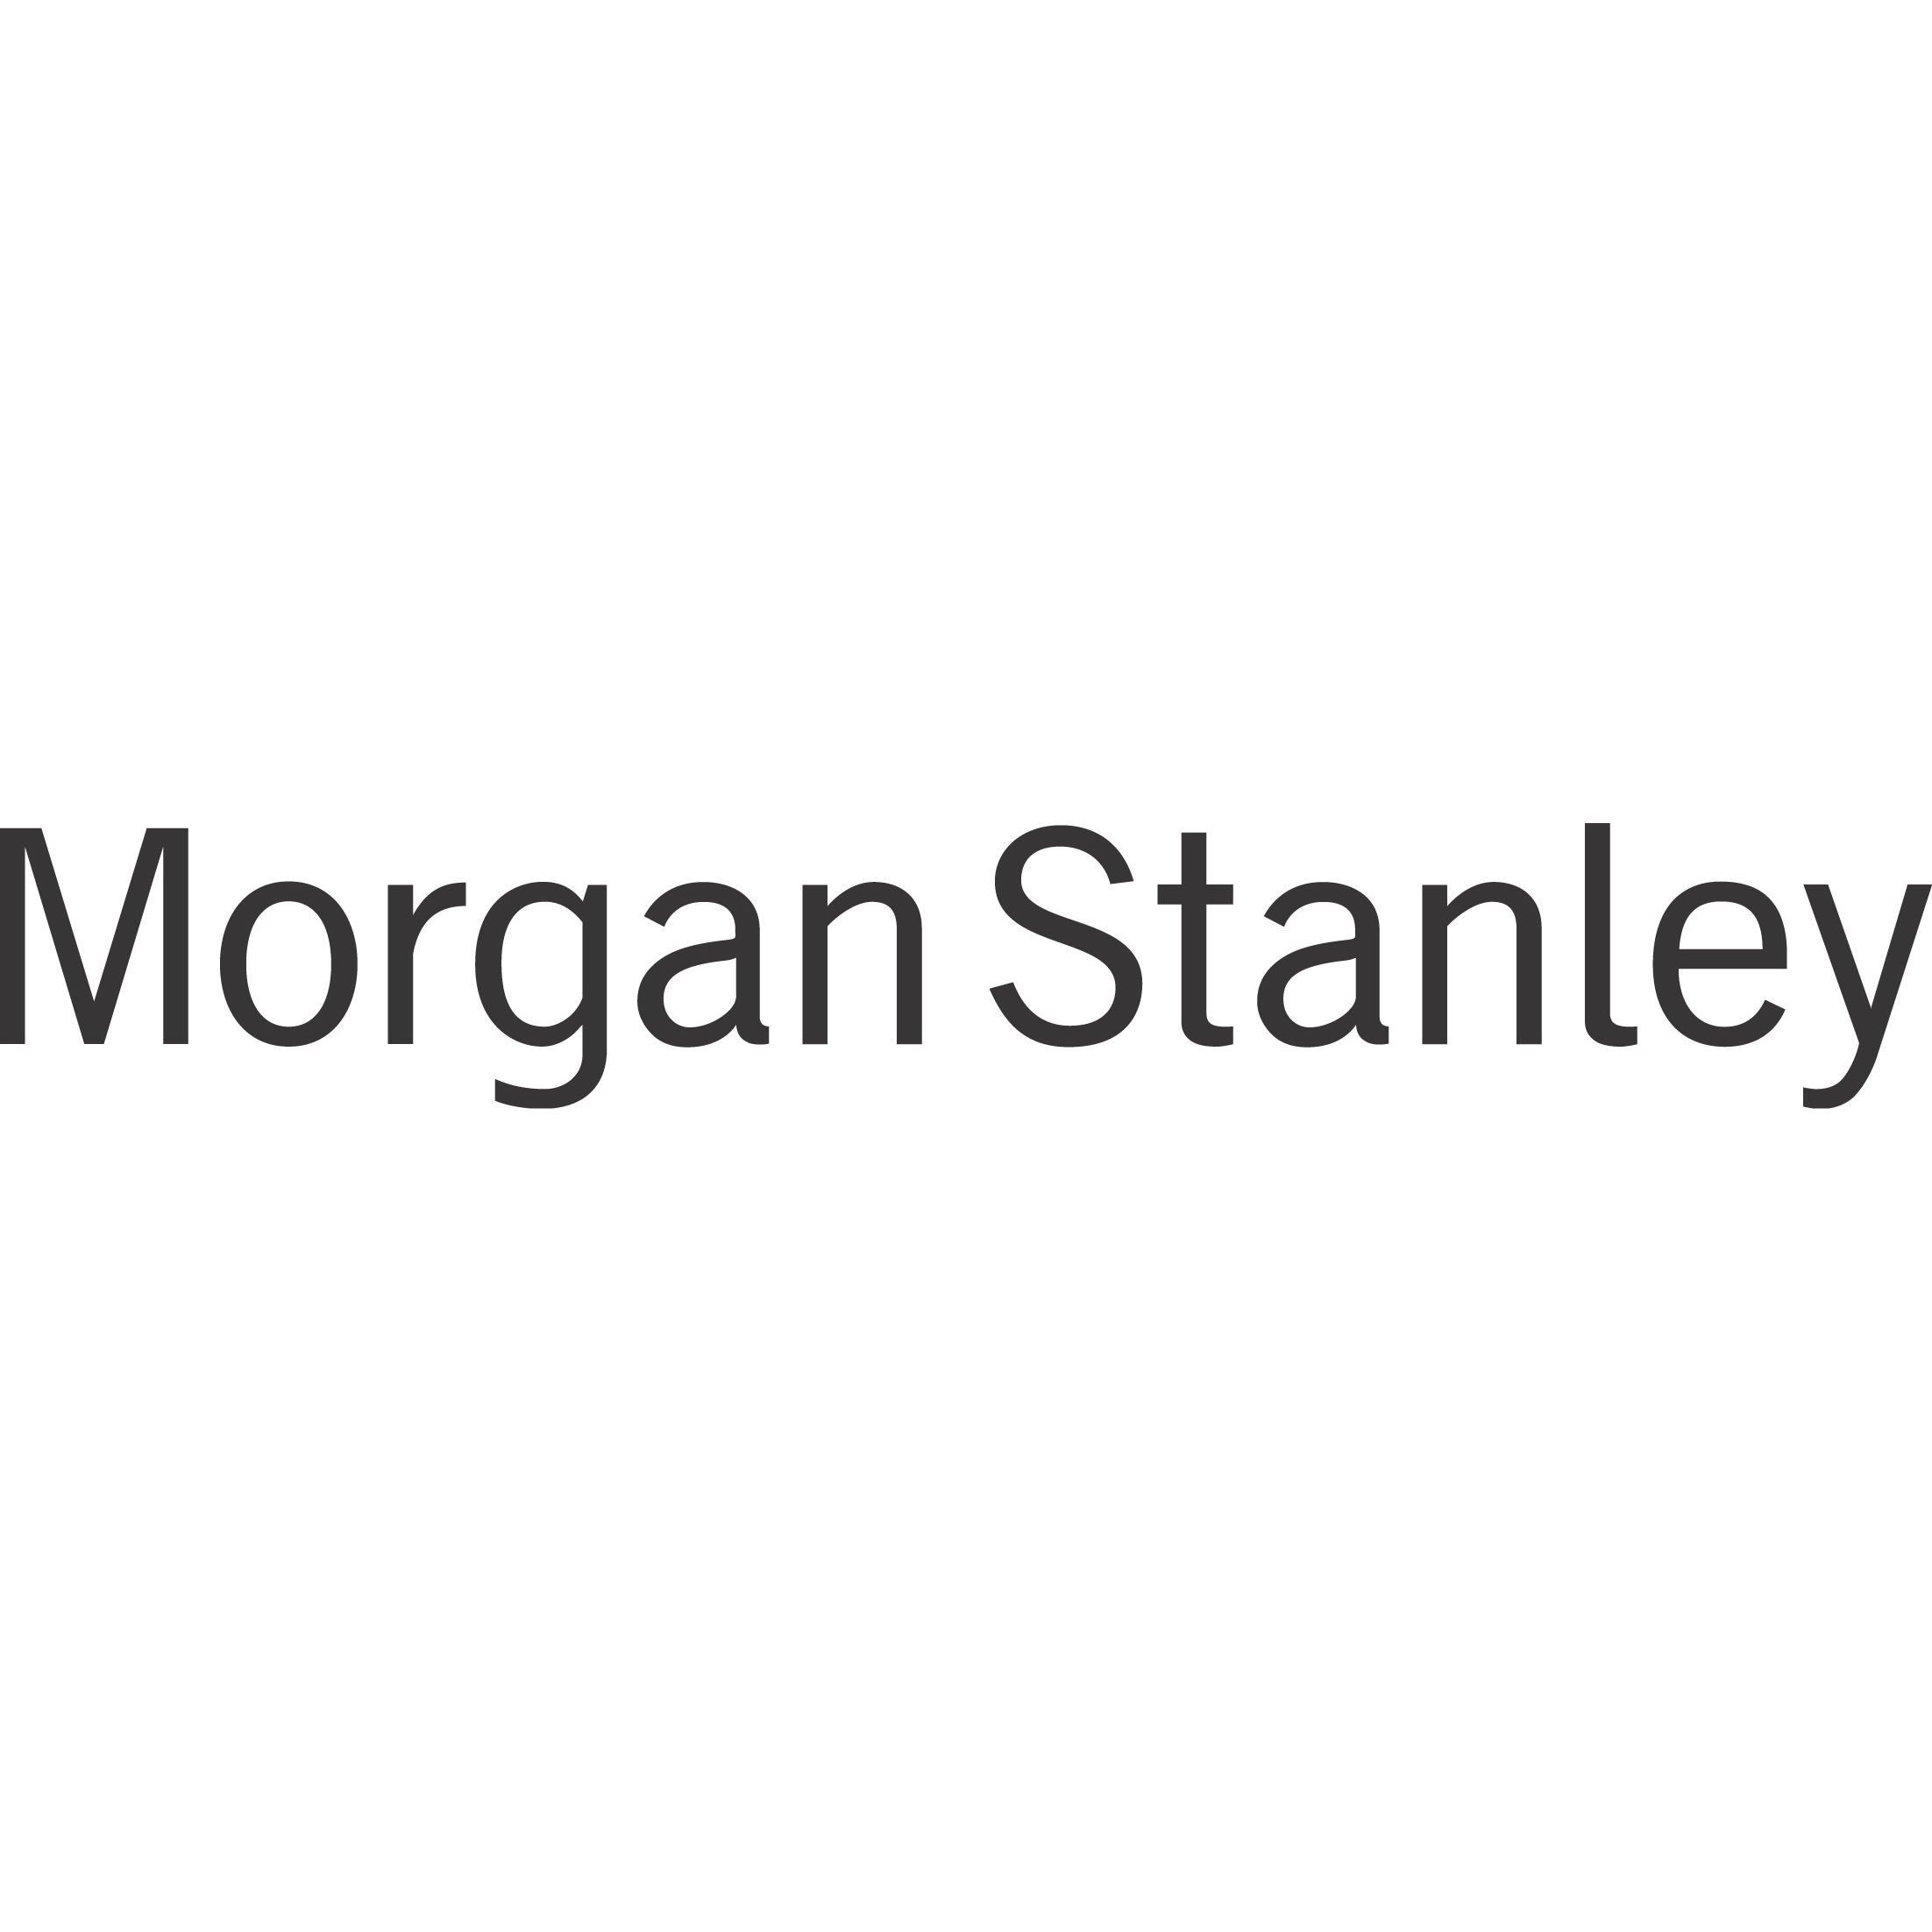 Bryan K. Longpre - Morgan Stanley | Financial Advisor in Pasadena,California